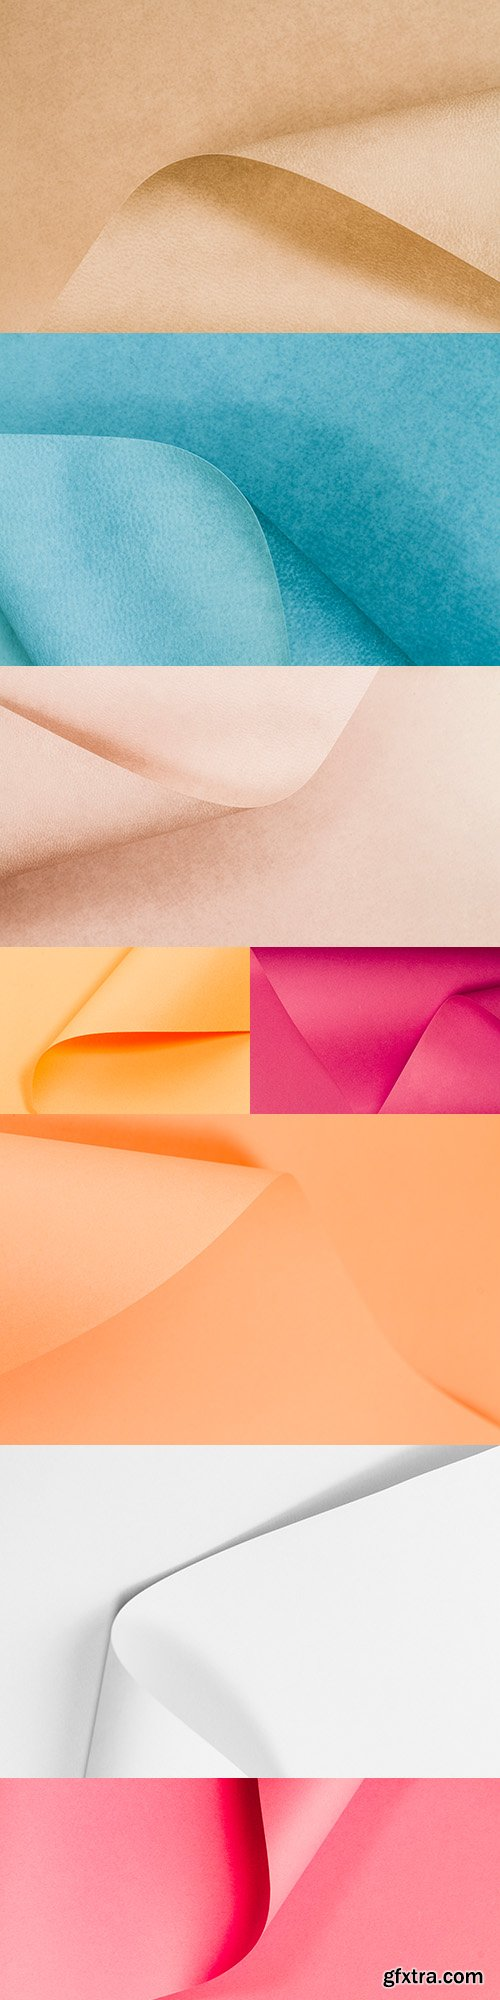 Colored paper collapsed page texture collection